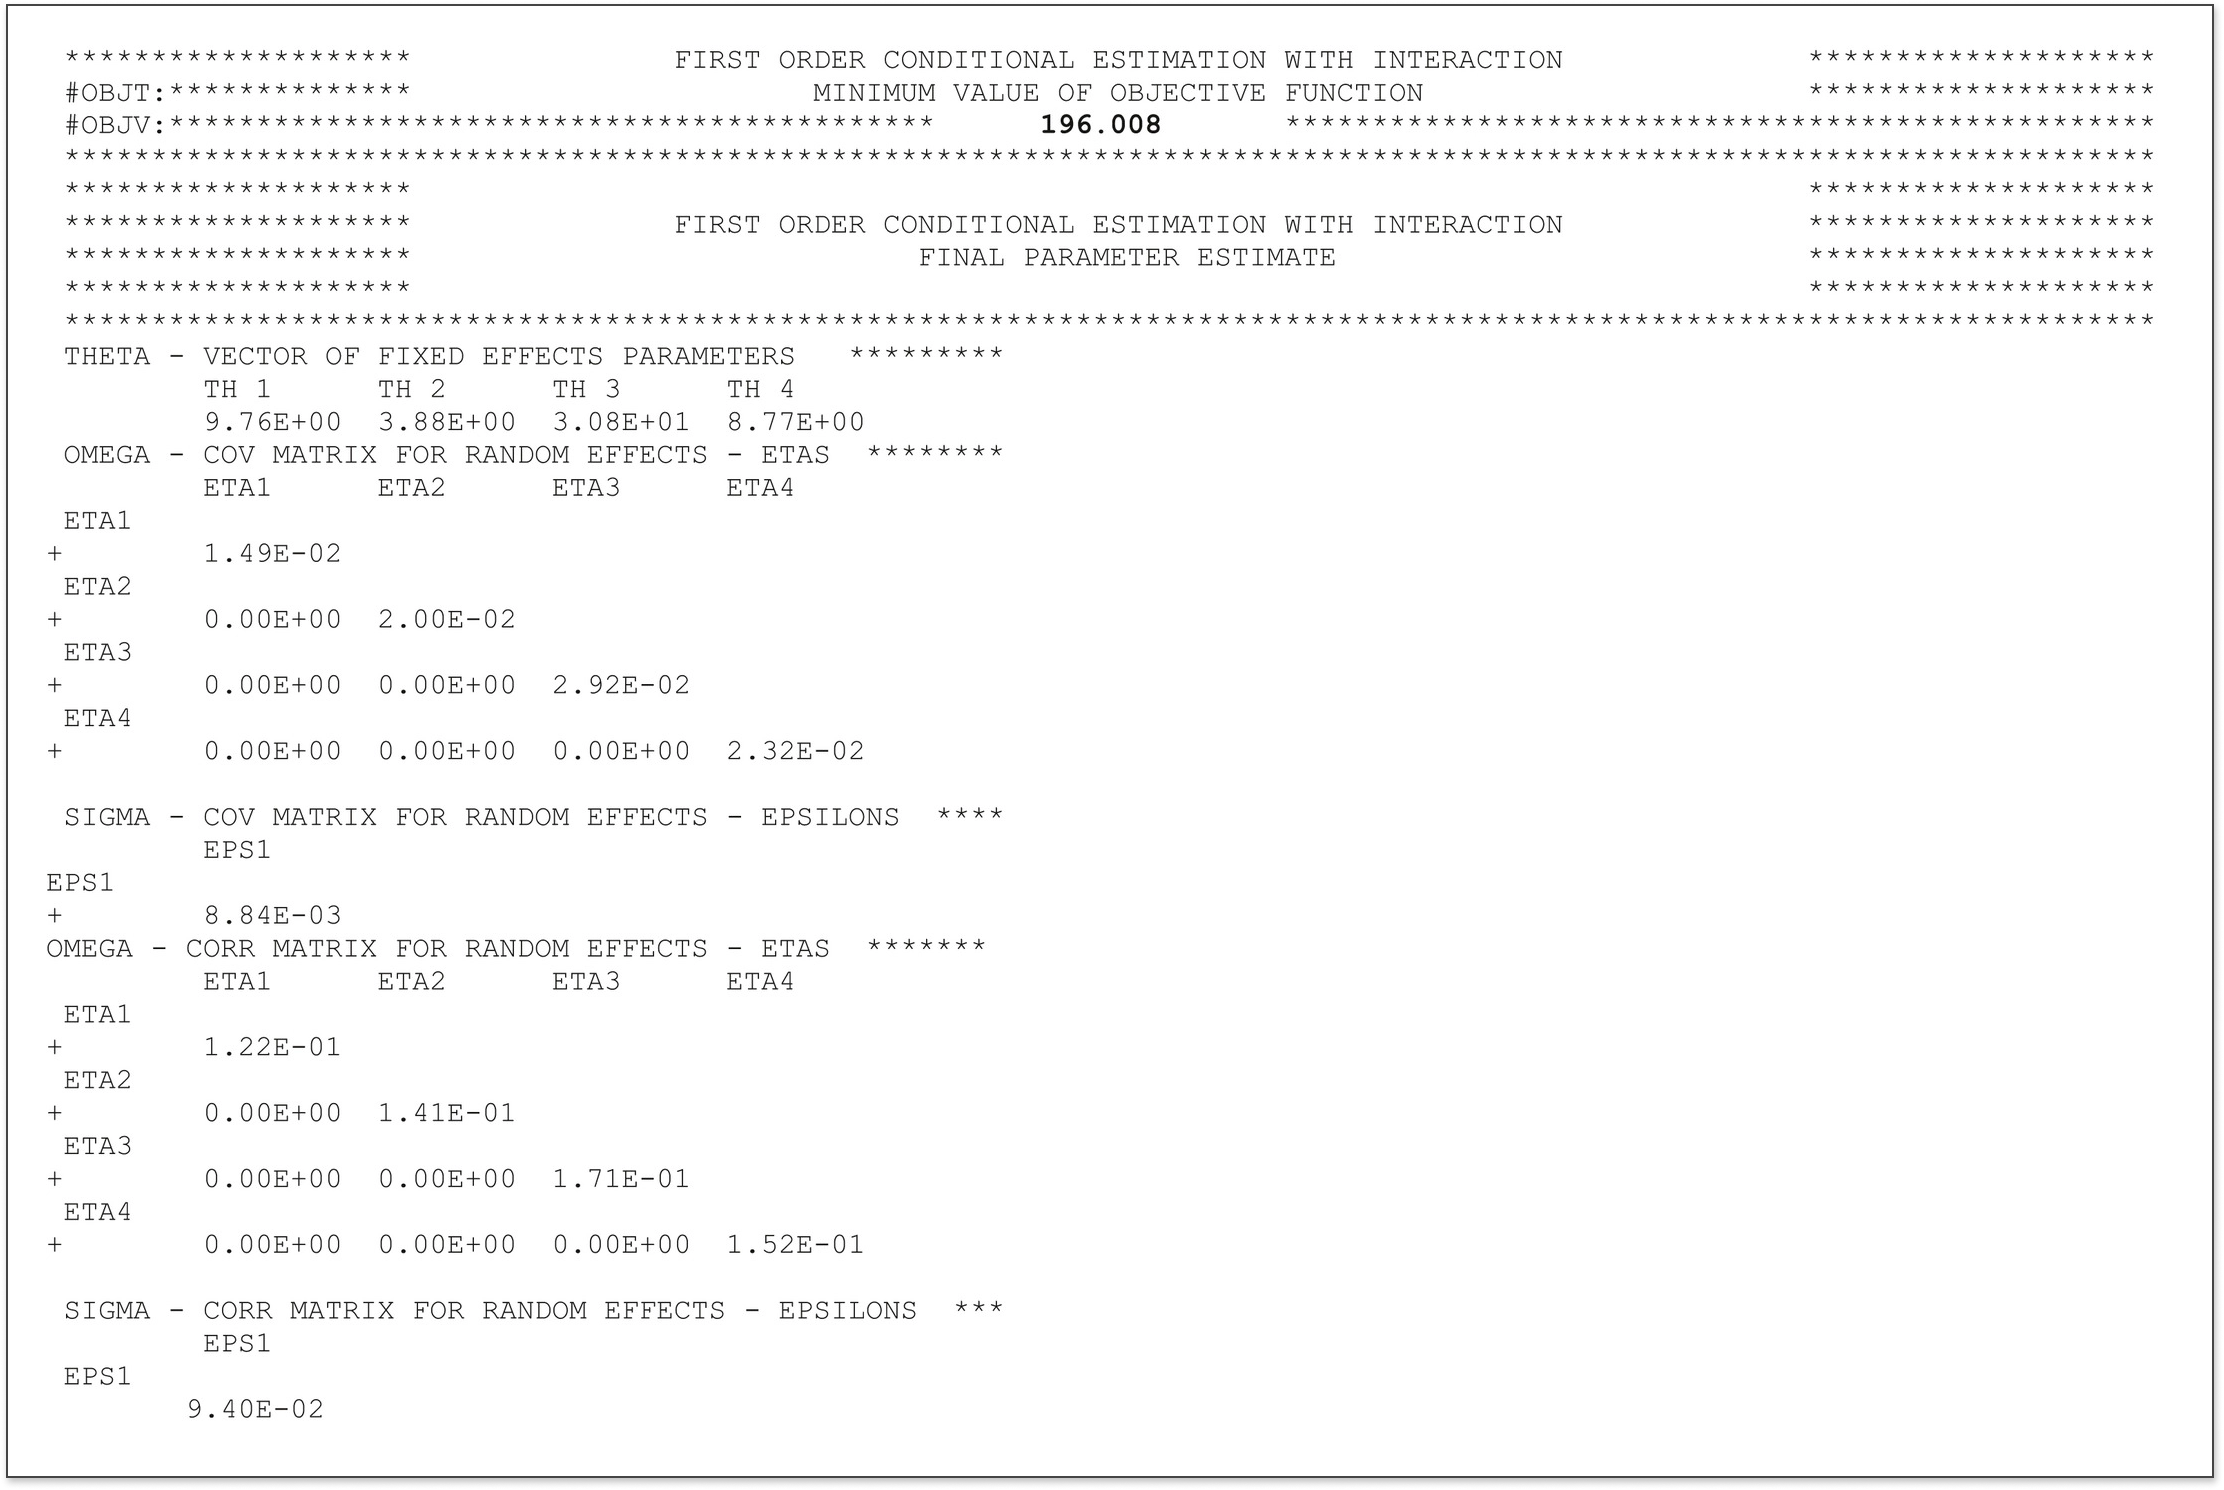 Example of NONMEM output report